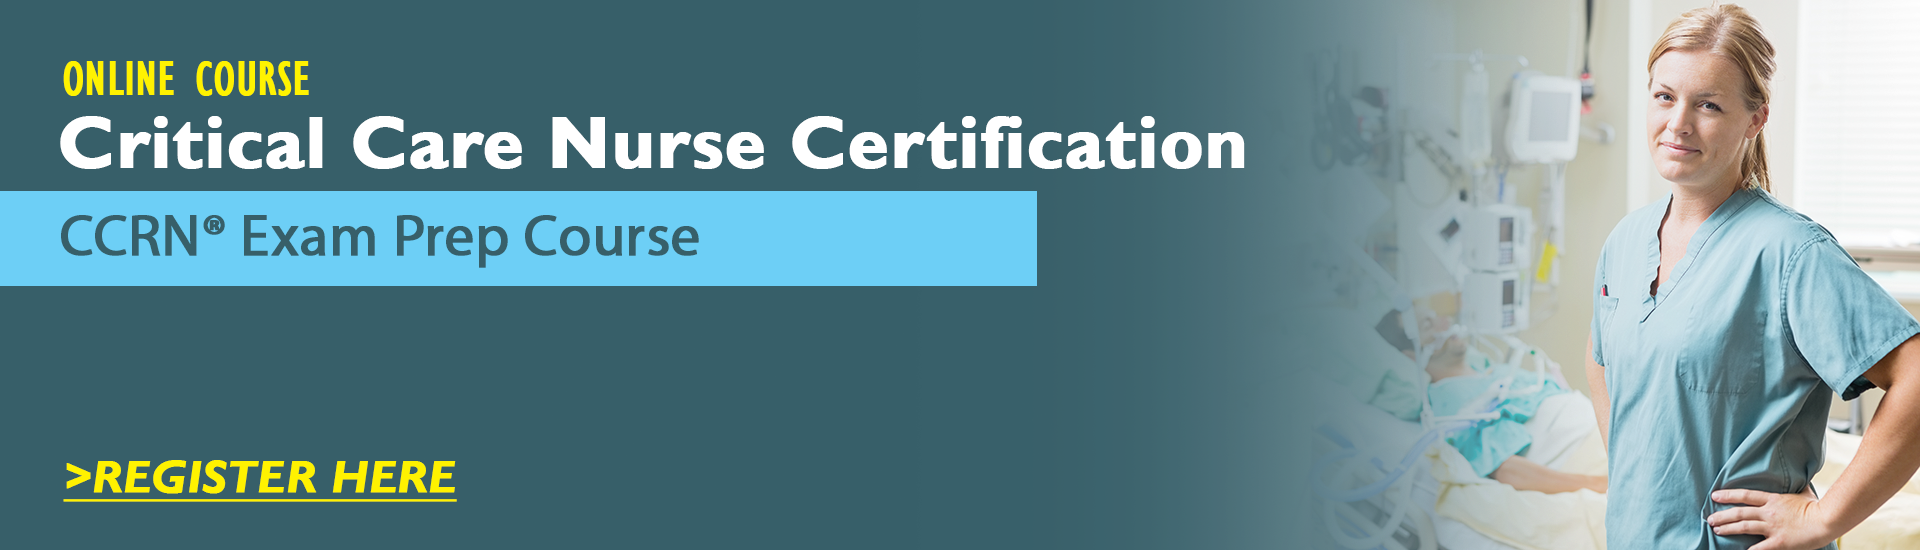 Critical Care Nurse Certification – CCRN Exam Prep Package with Practice Test & NSN Access